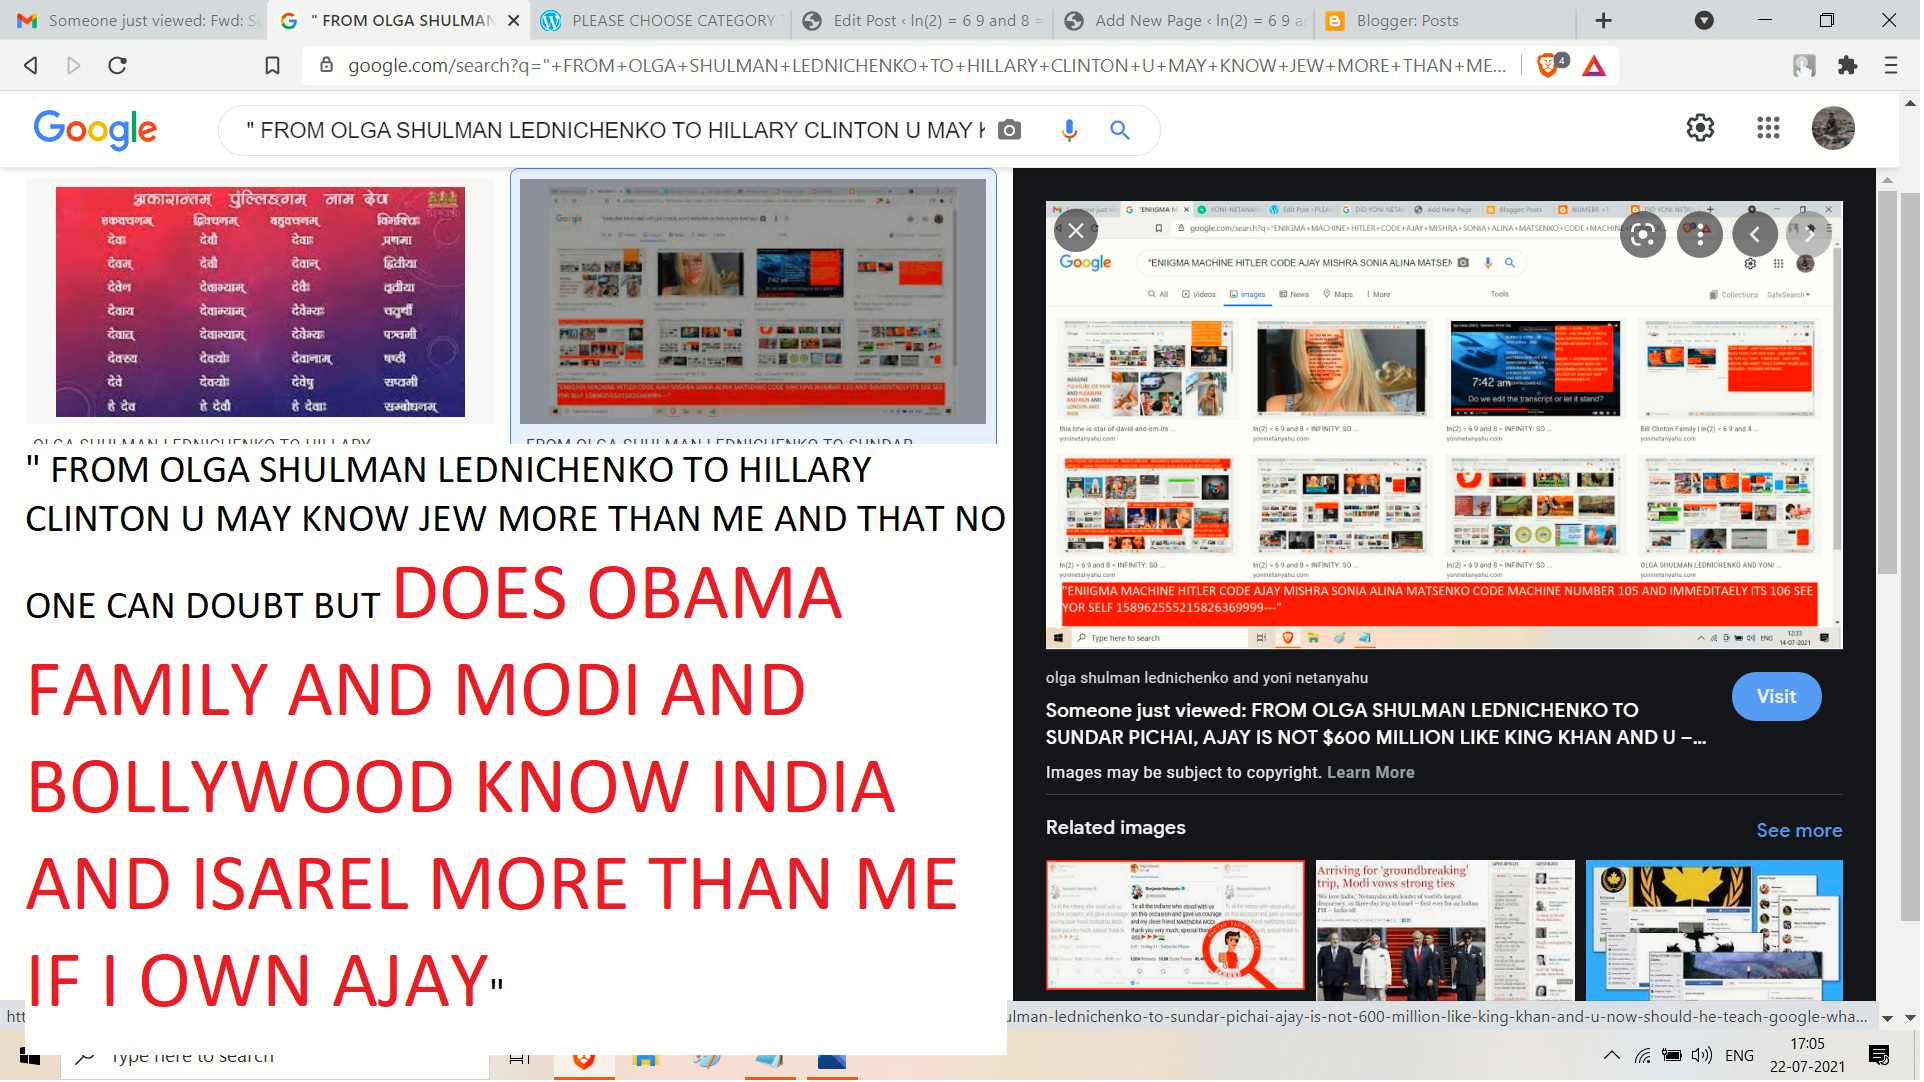 DOES OBAMA FAMILY AND MODI AND BOLLYWOOD KNOW INDIA AND ISAREL MORE THAN ME IF I OWN AJAY